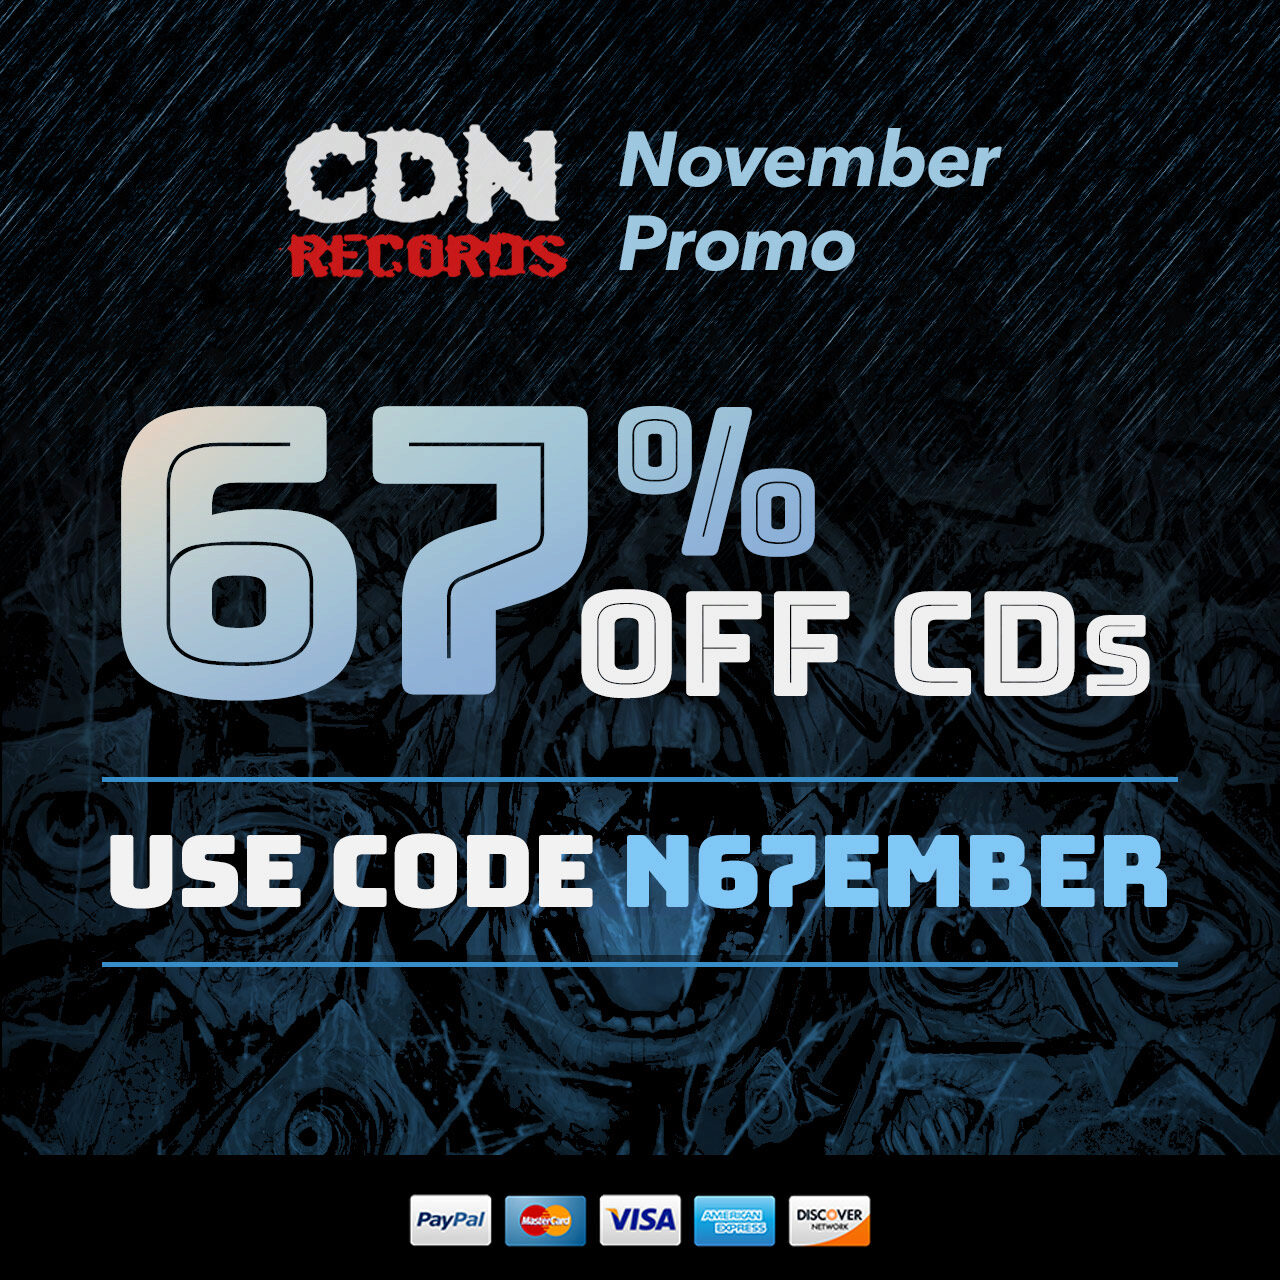 promo graphic for coupon code N67EMBER